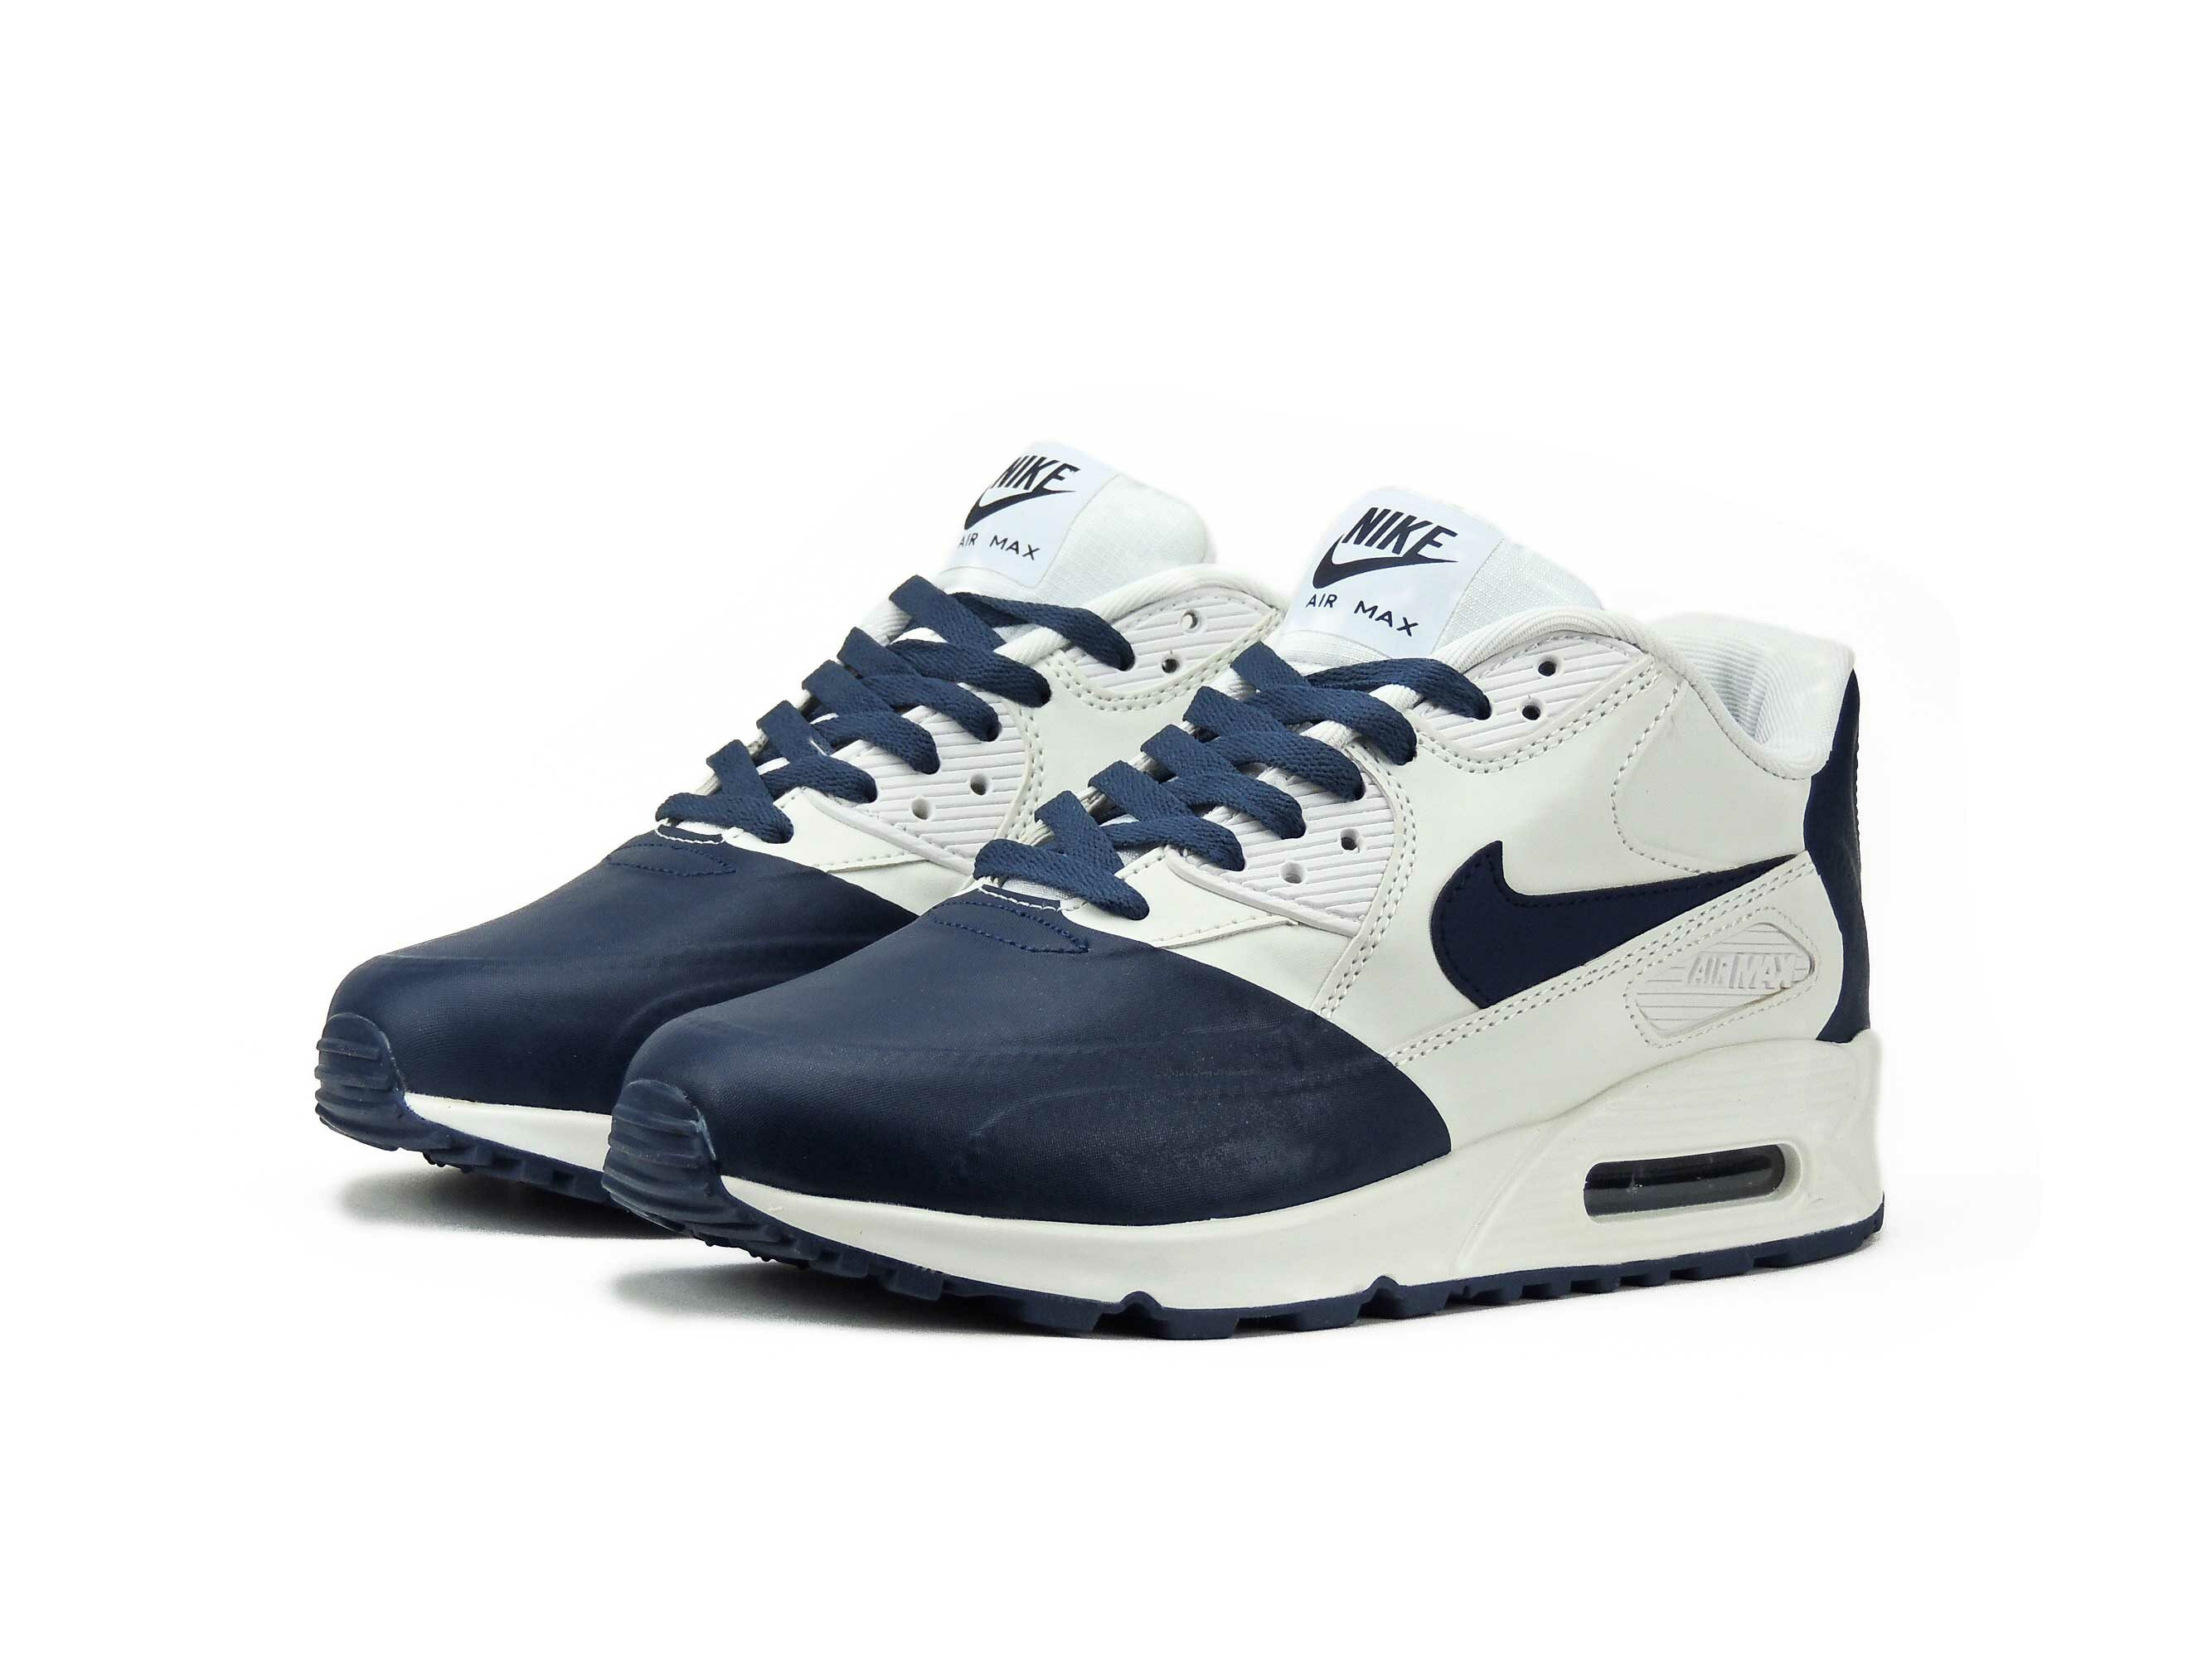 nike air max 90 premium se blue white 858954_004 купить